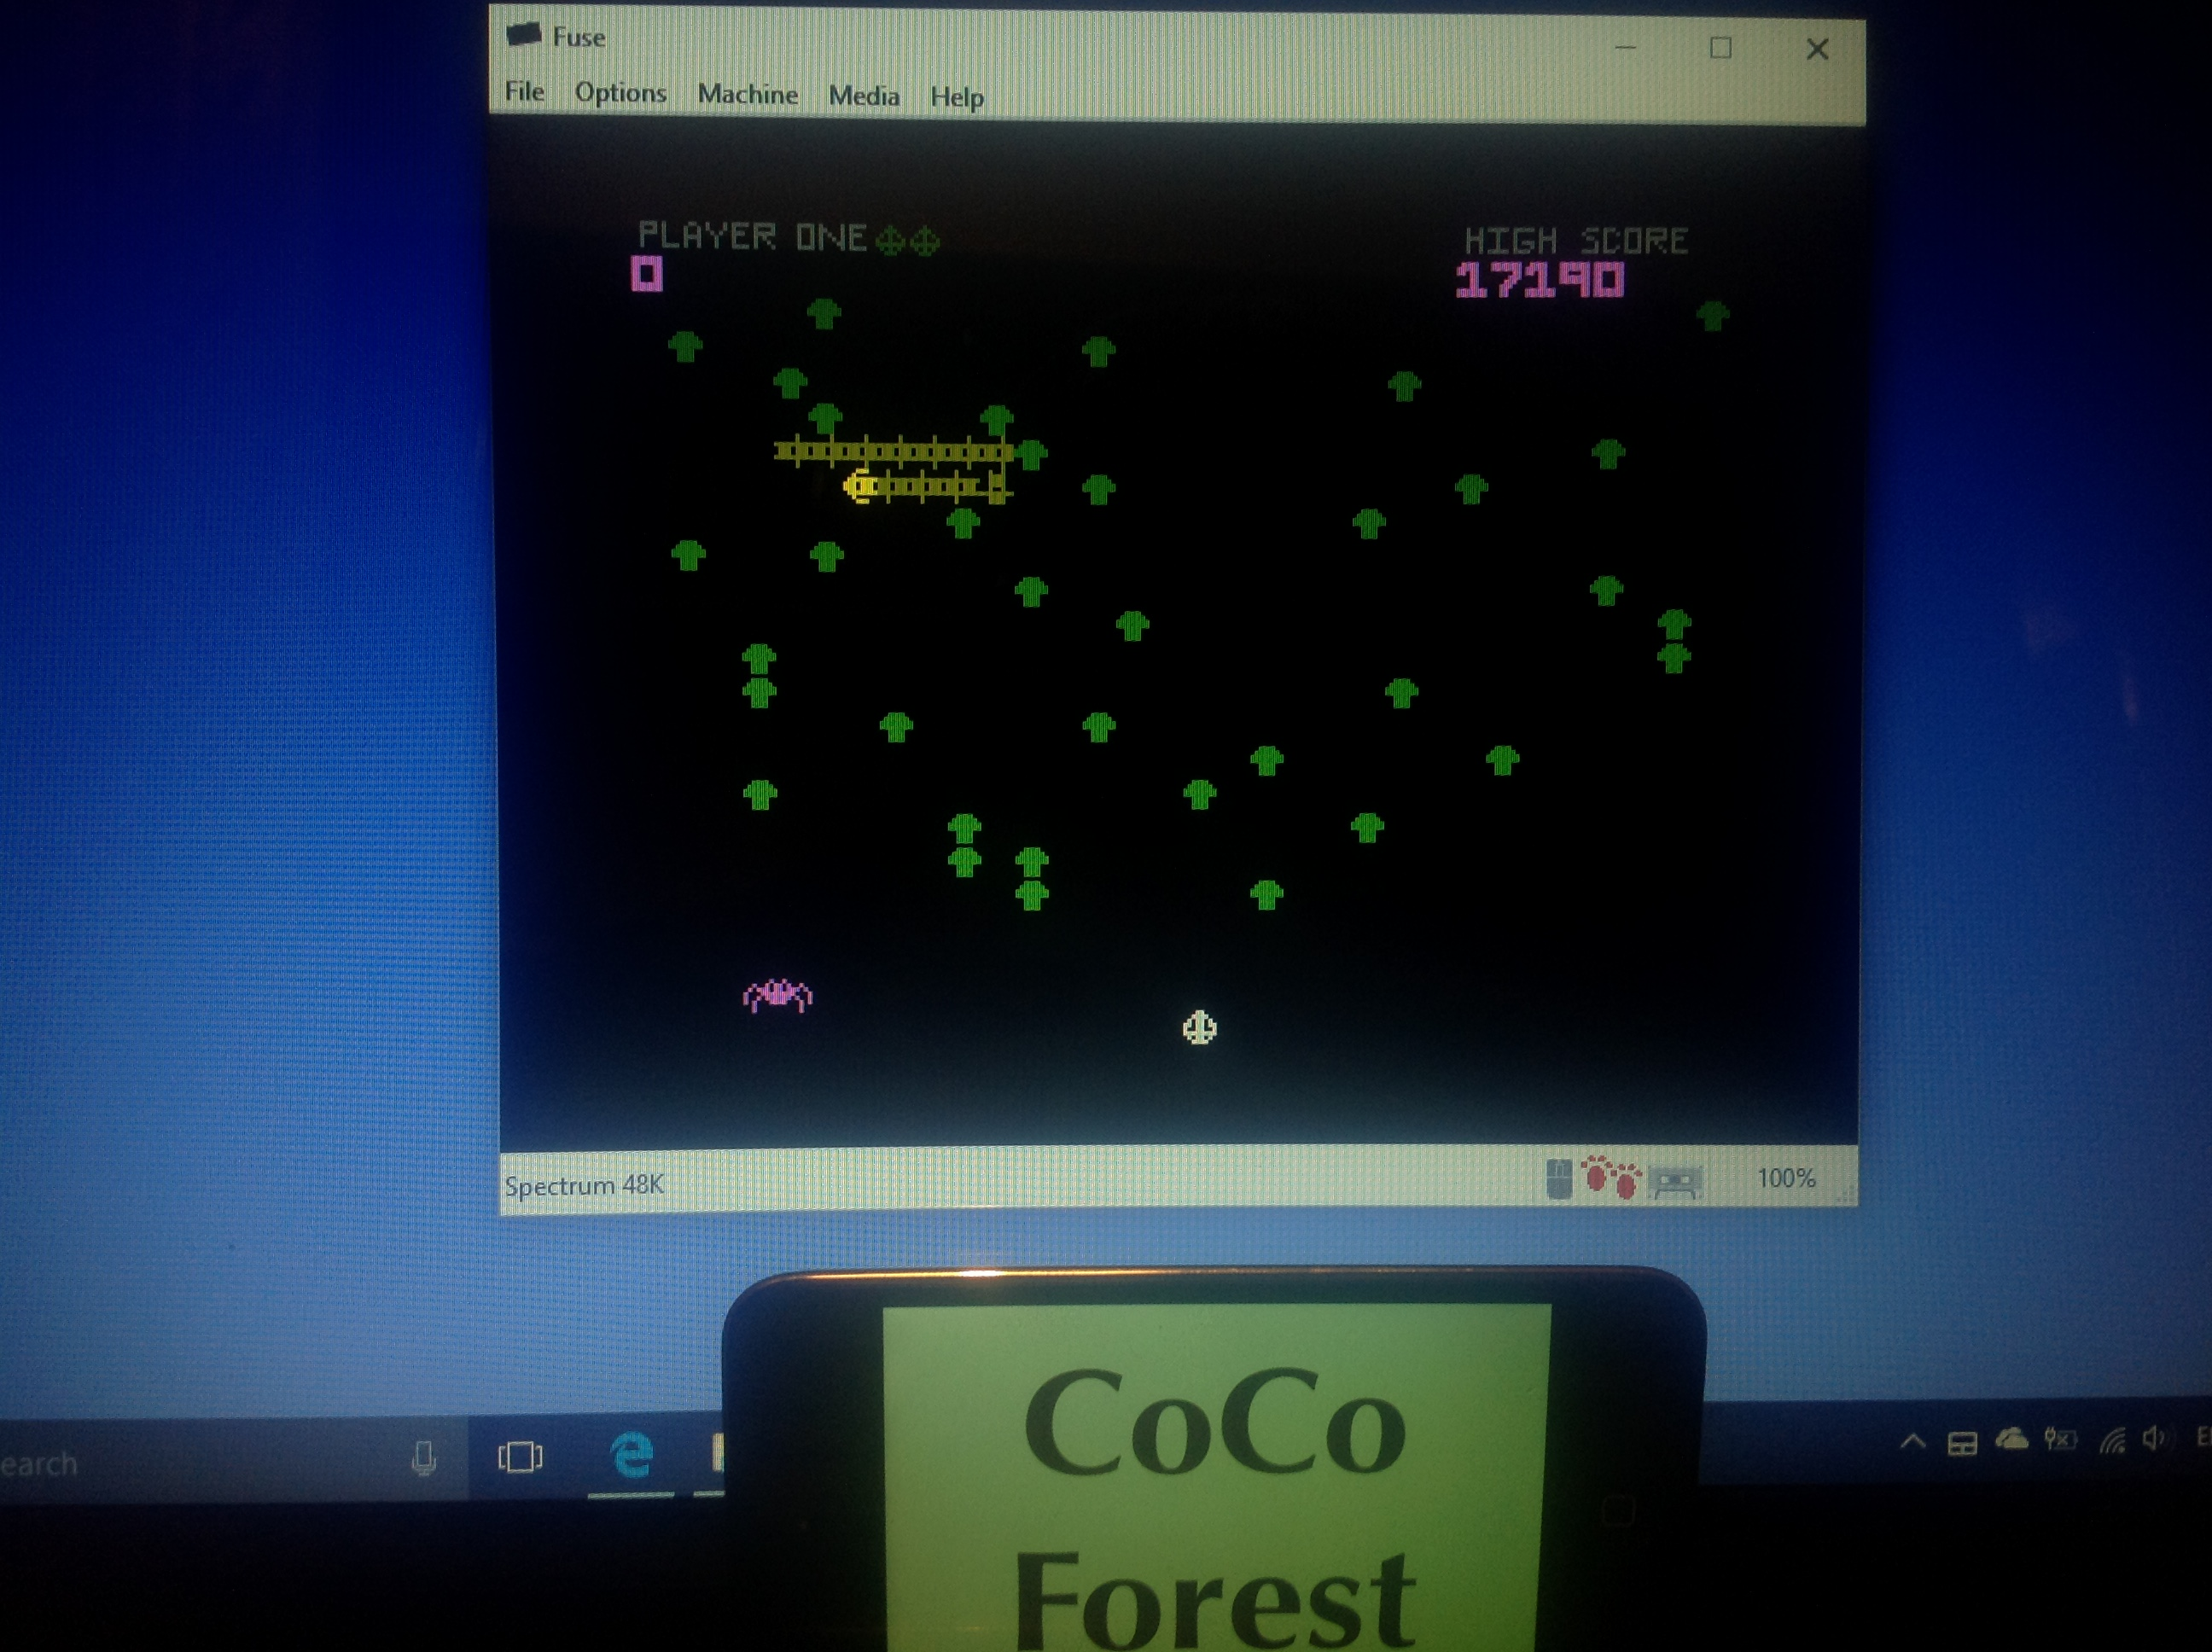 CoCoForest: Spectipede [R&R Software / Mastertronic] (ZX Spectrum Emulated) 17,190 points on 2018-01-24 14:01:27